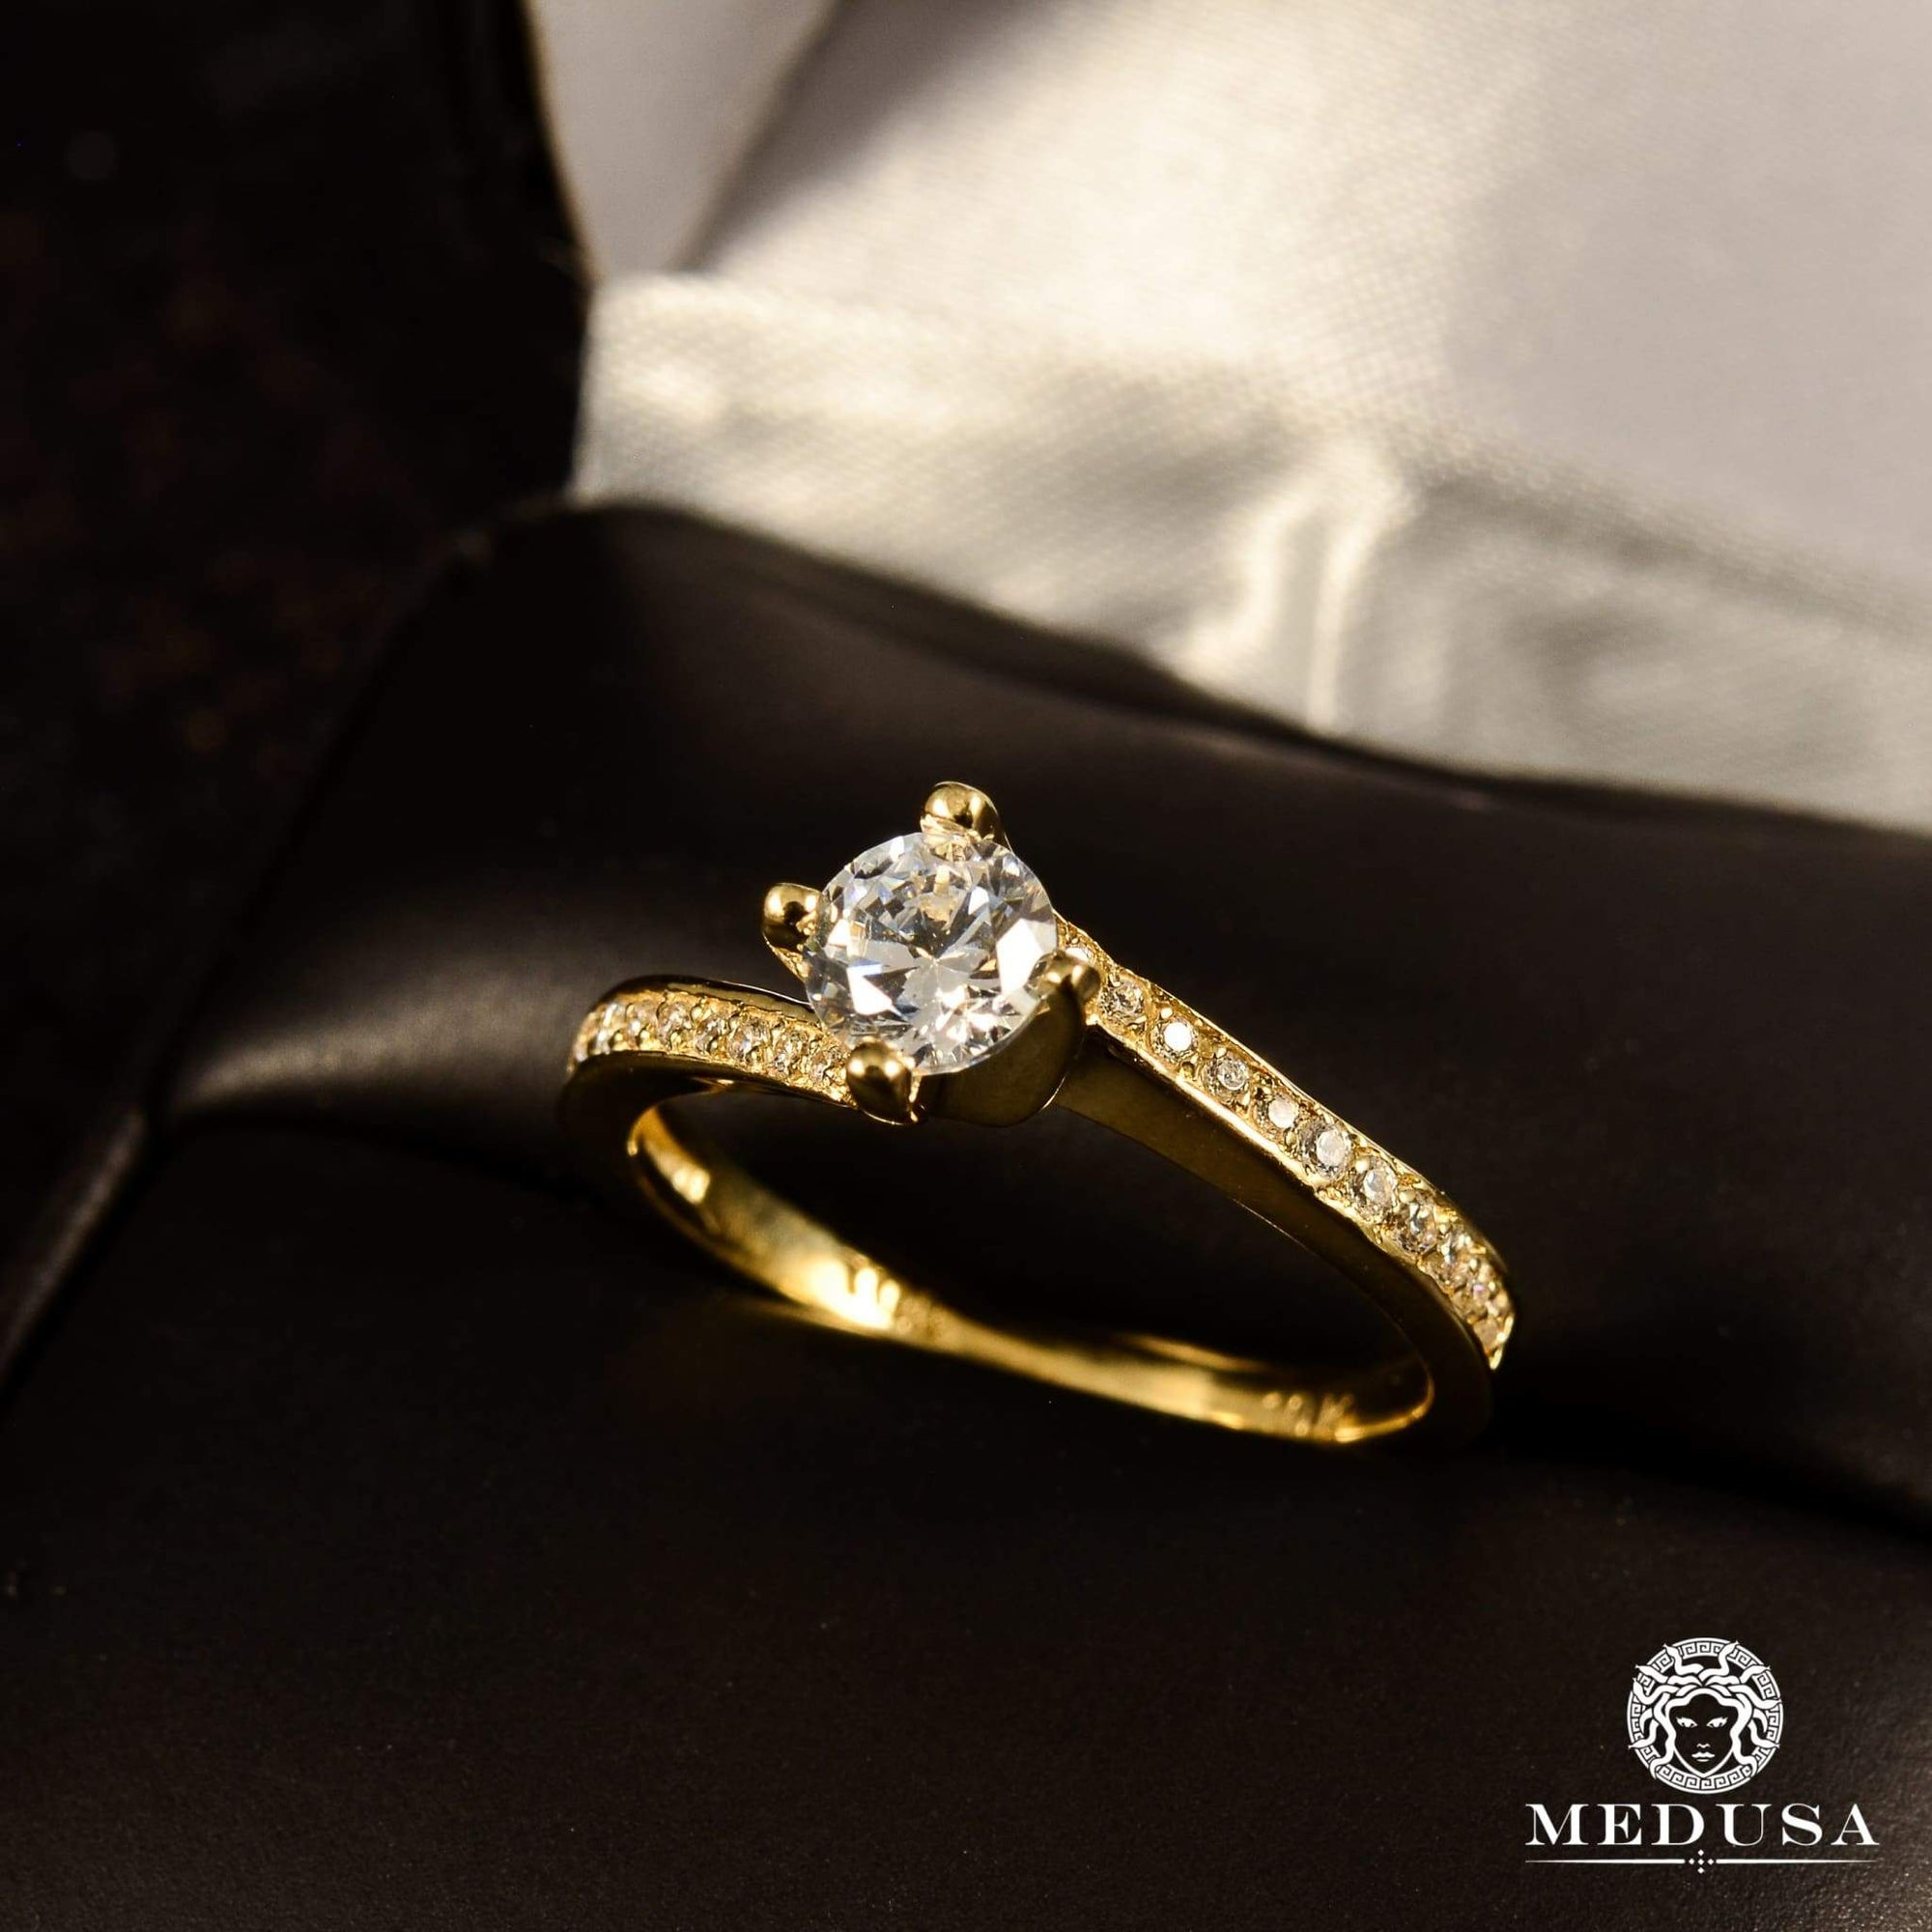 Bague à Diamants en Or 14K | Bague Fiançaille Solitaire F7 - MA0723